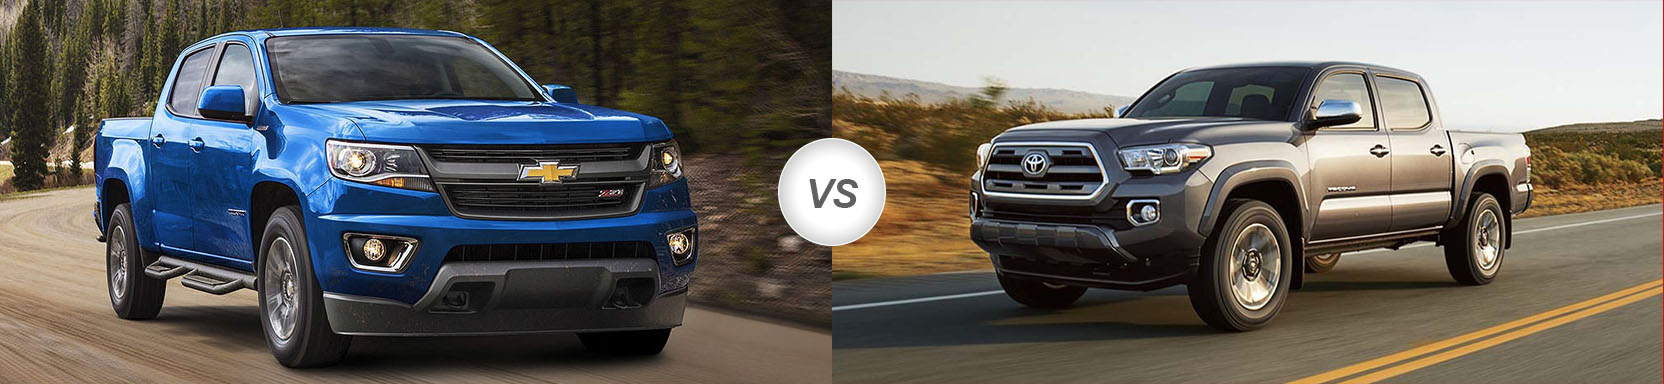 2018 Chevrolet Colorado vs 2018 Toyota Tacoma